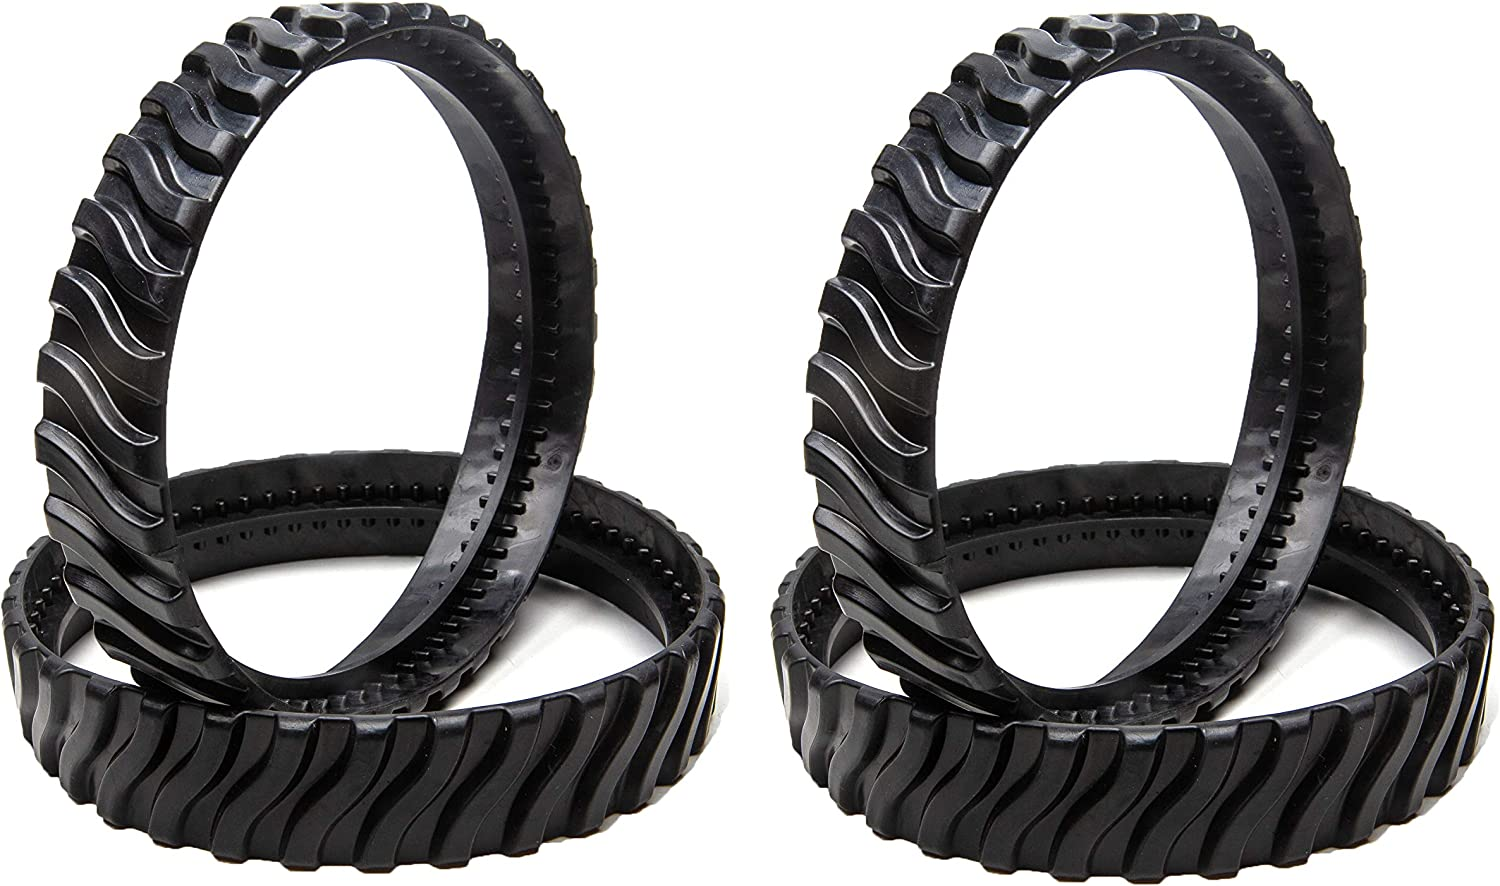 ATIE R0526100 Track Replacement Fits for Zodiac MX8 Elite, MX6 Elite, MX8, Mx6 Pool Cleaner Tire Track R0526100 (4 Pack)